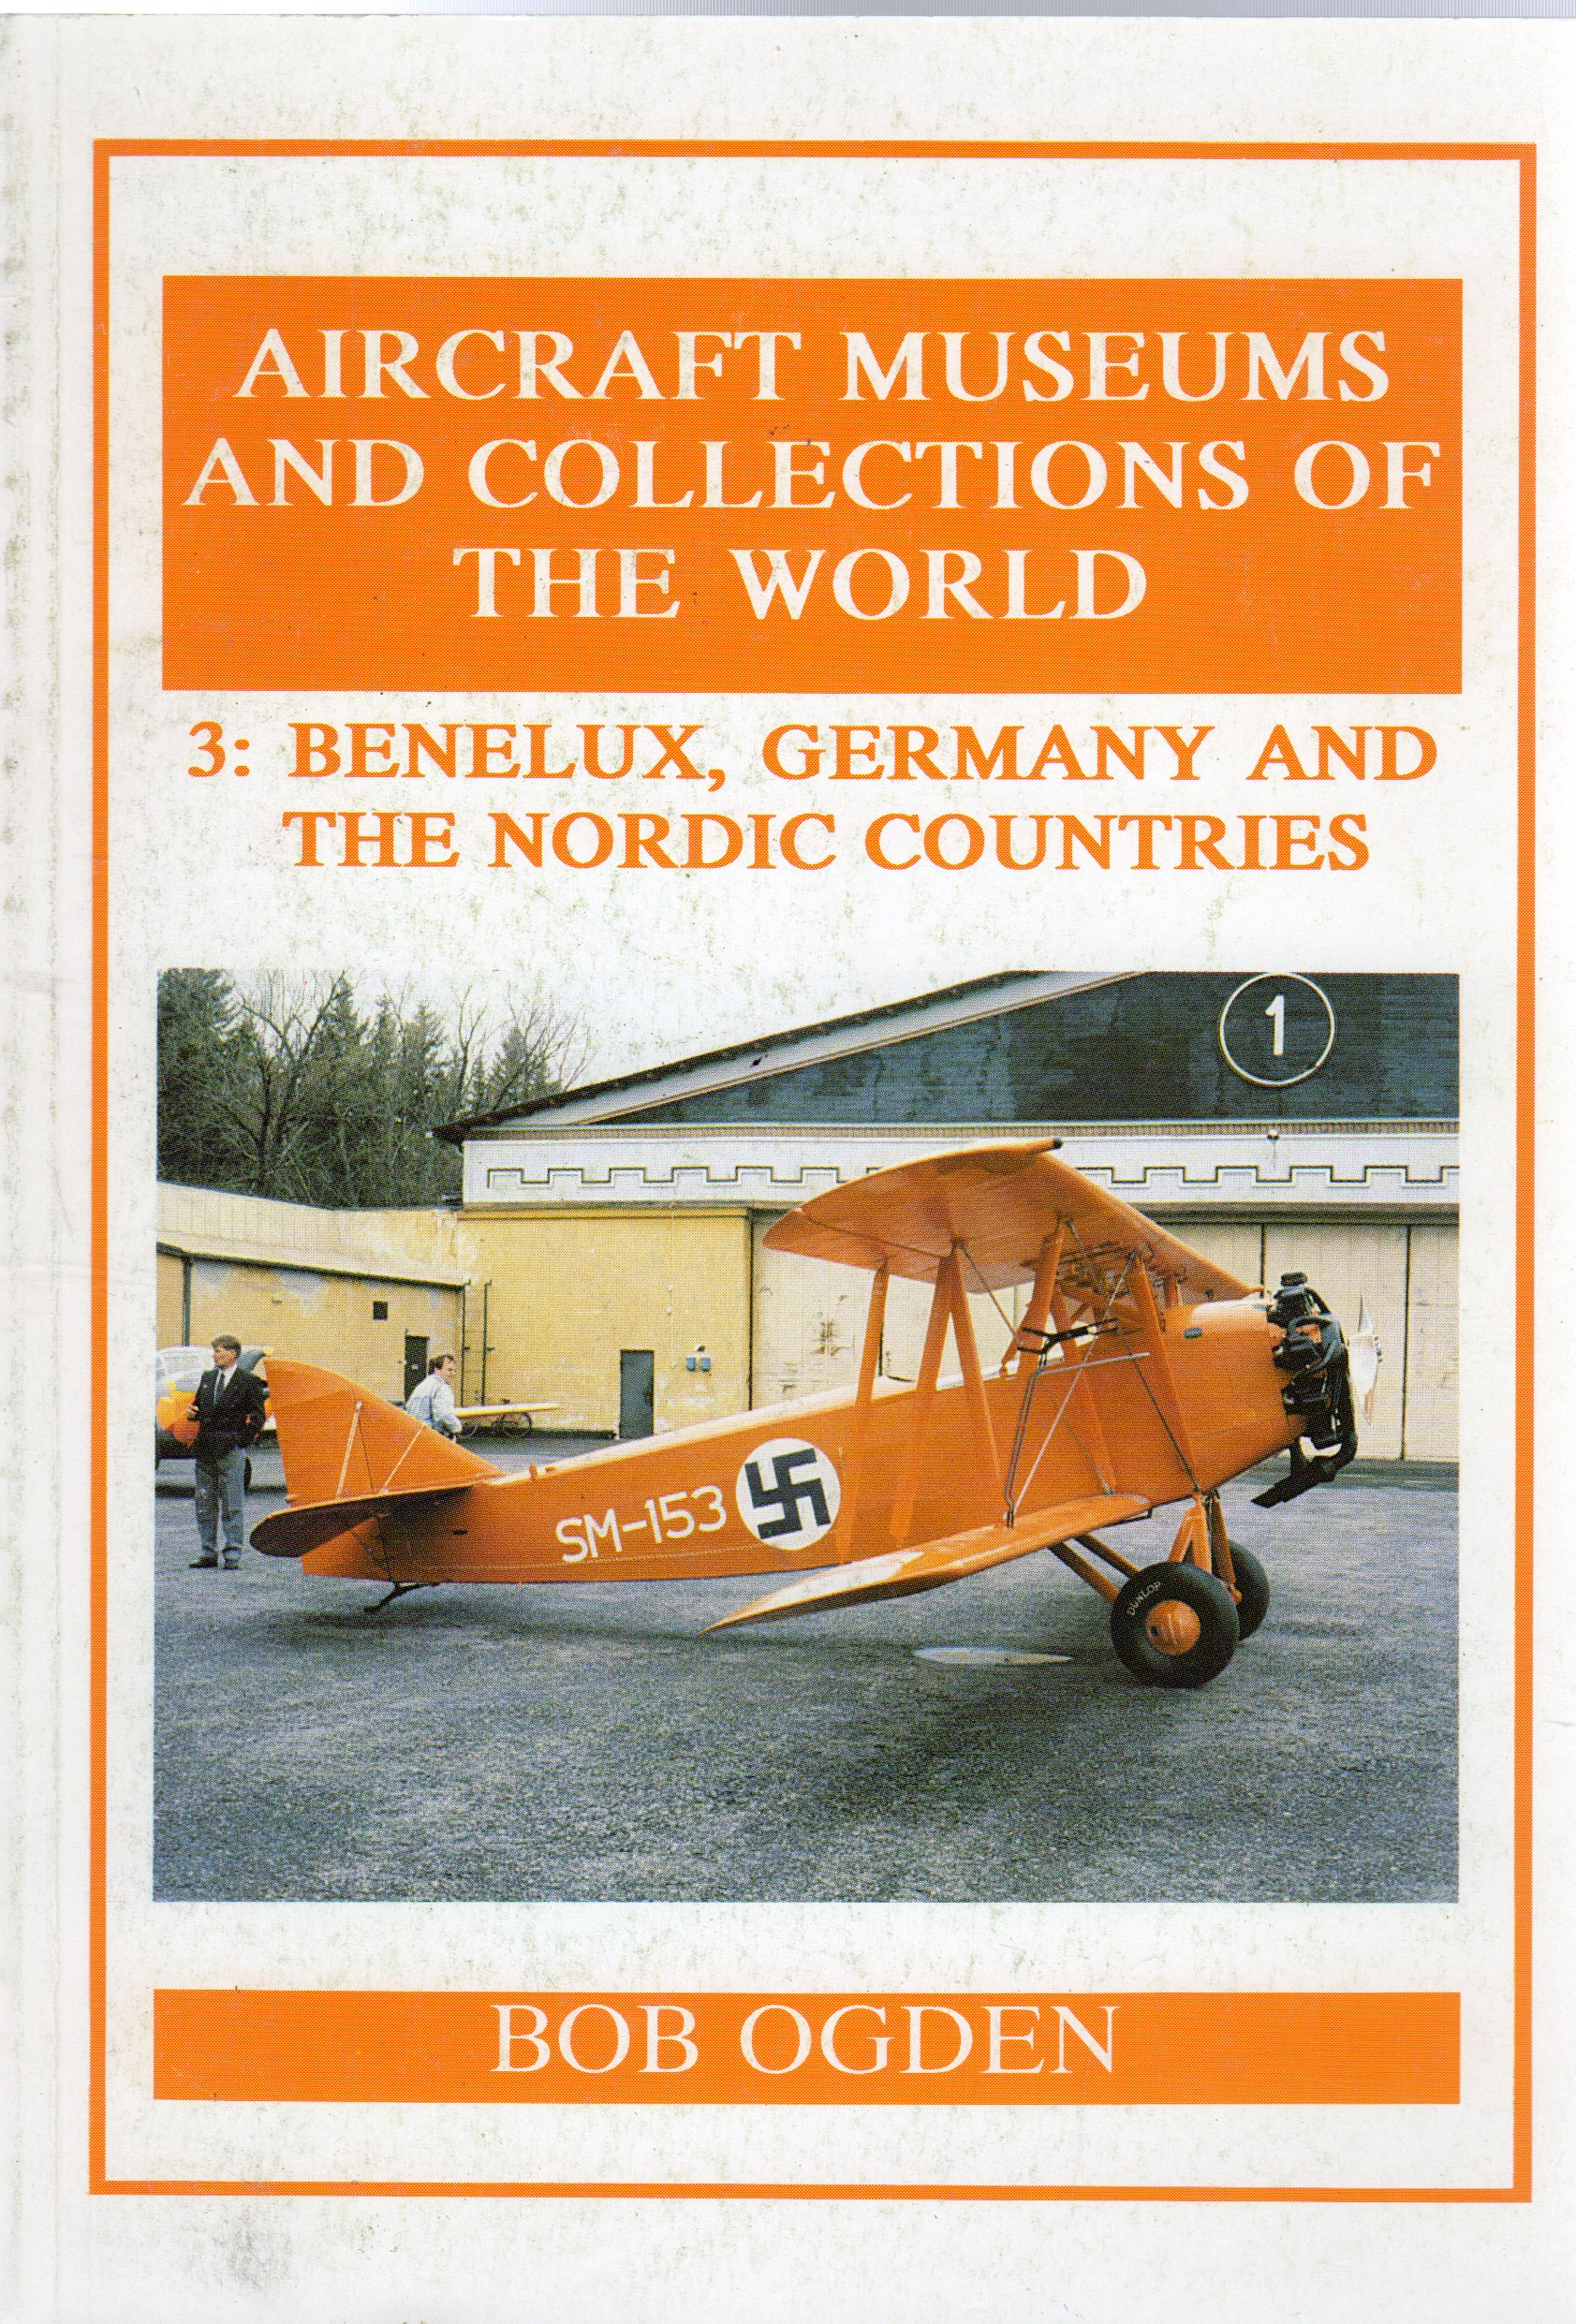 Image for Aircraft Museums and Collections of the World : 3 - Benelux, Germany and the Nordic Countries (SIGNED COPY)